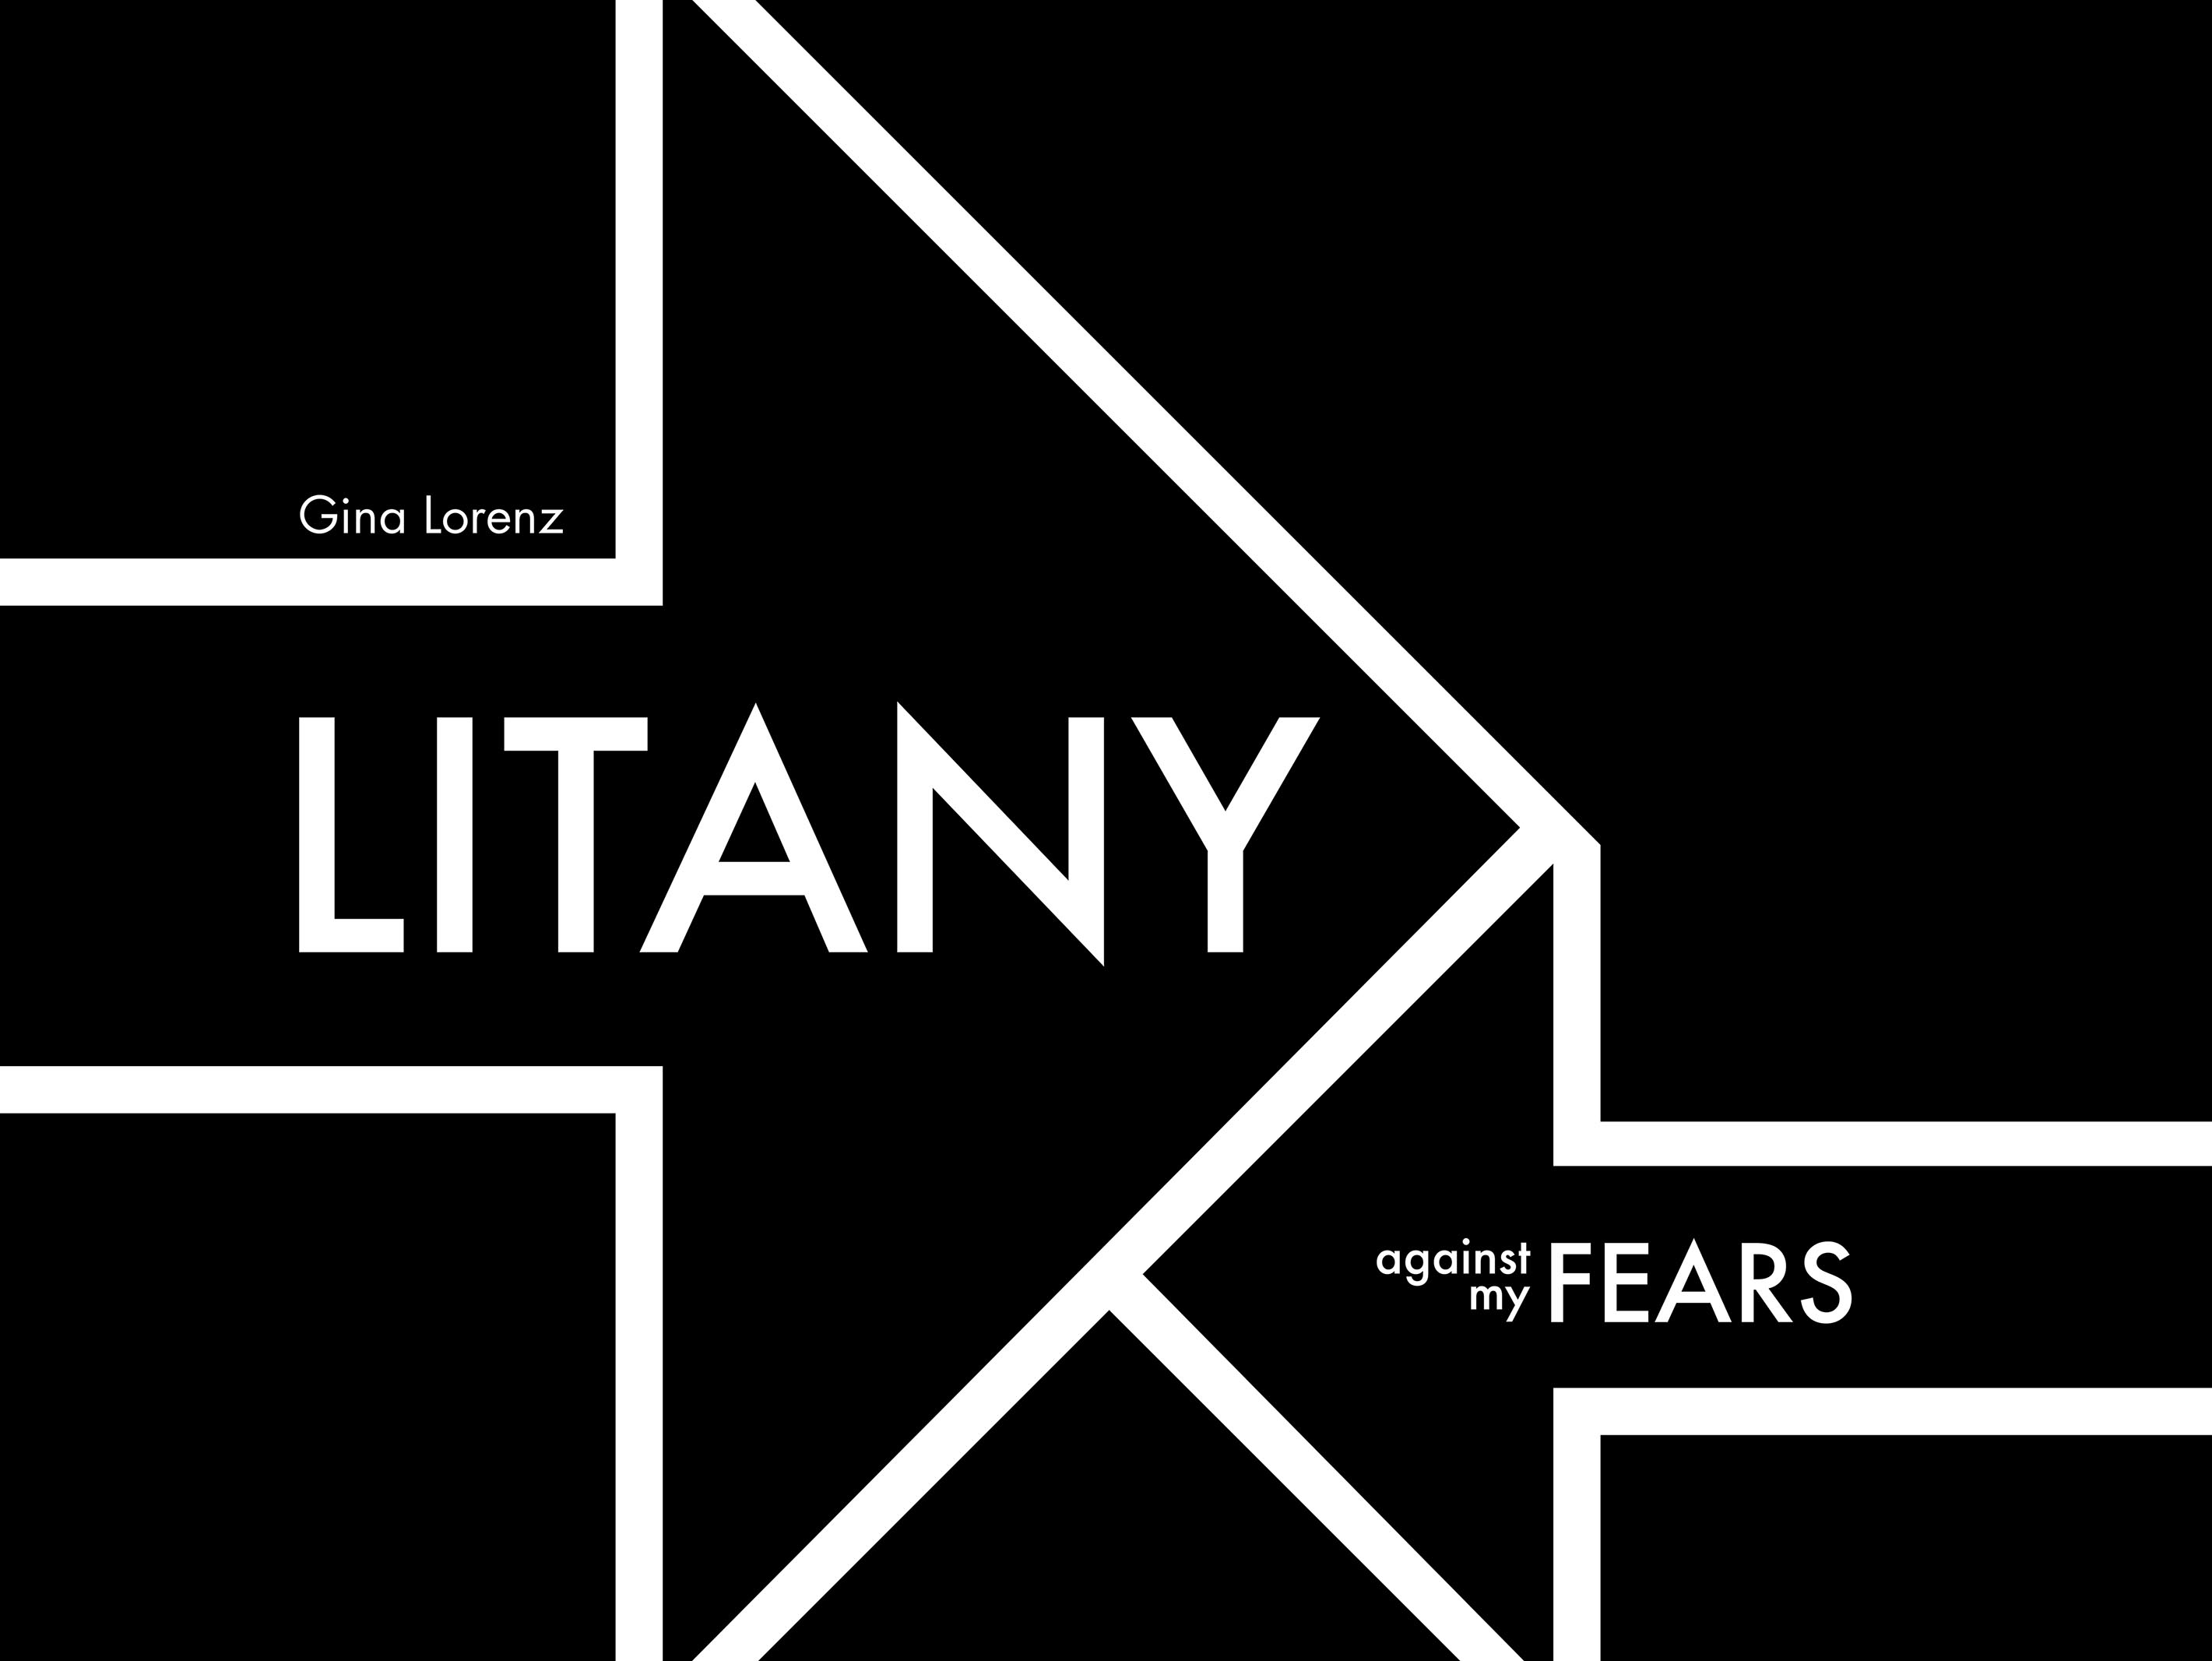 Litany of My Fears